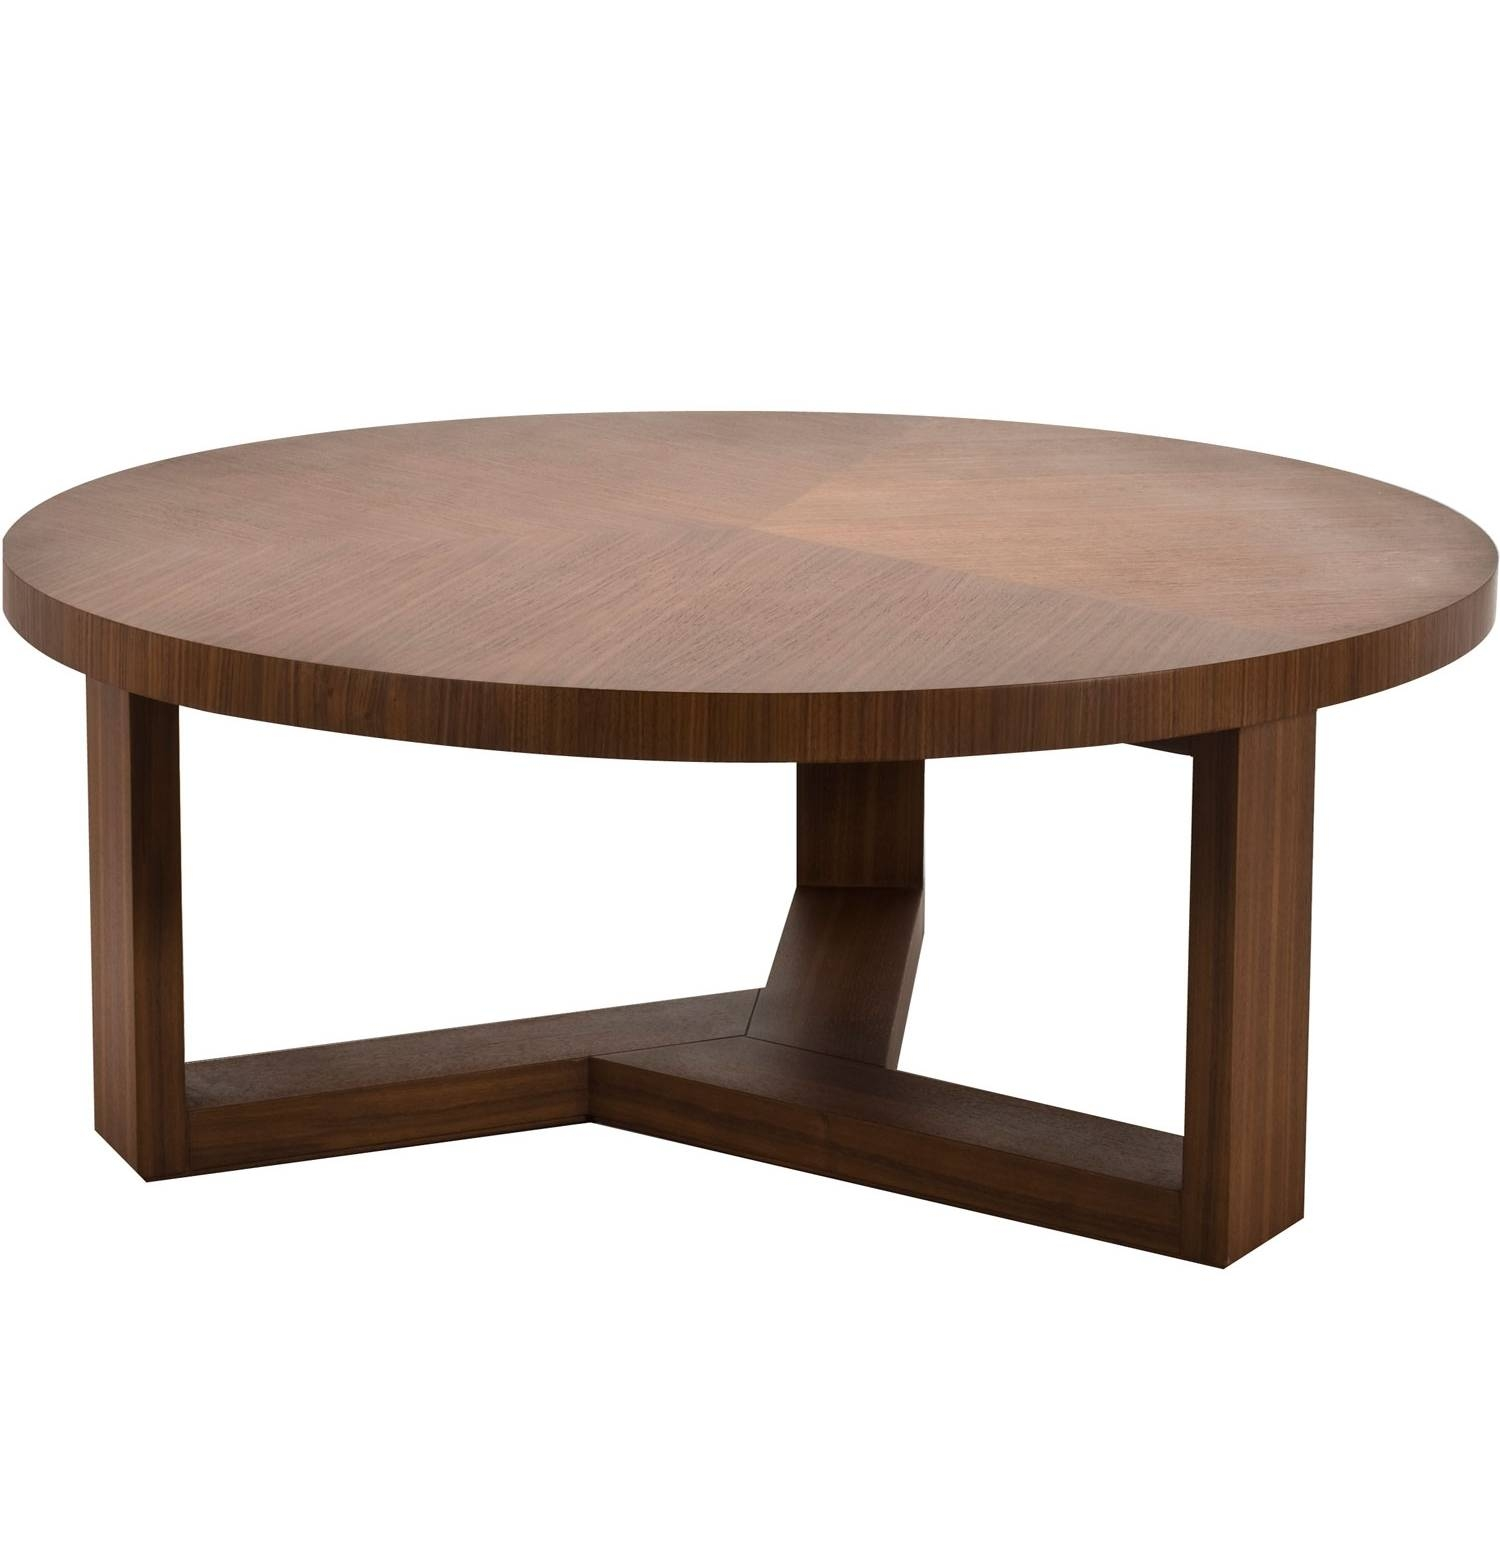 Wonderful Rustic Modern Coffee Tables Table Inside Decor regarding Wood Modern Coffee Tables (Image 30 of 30)